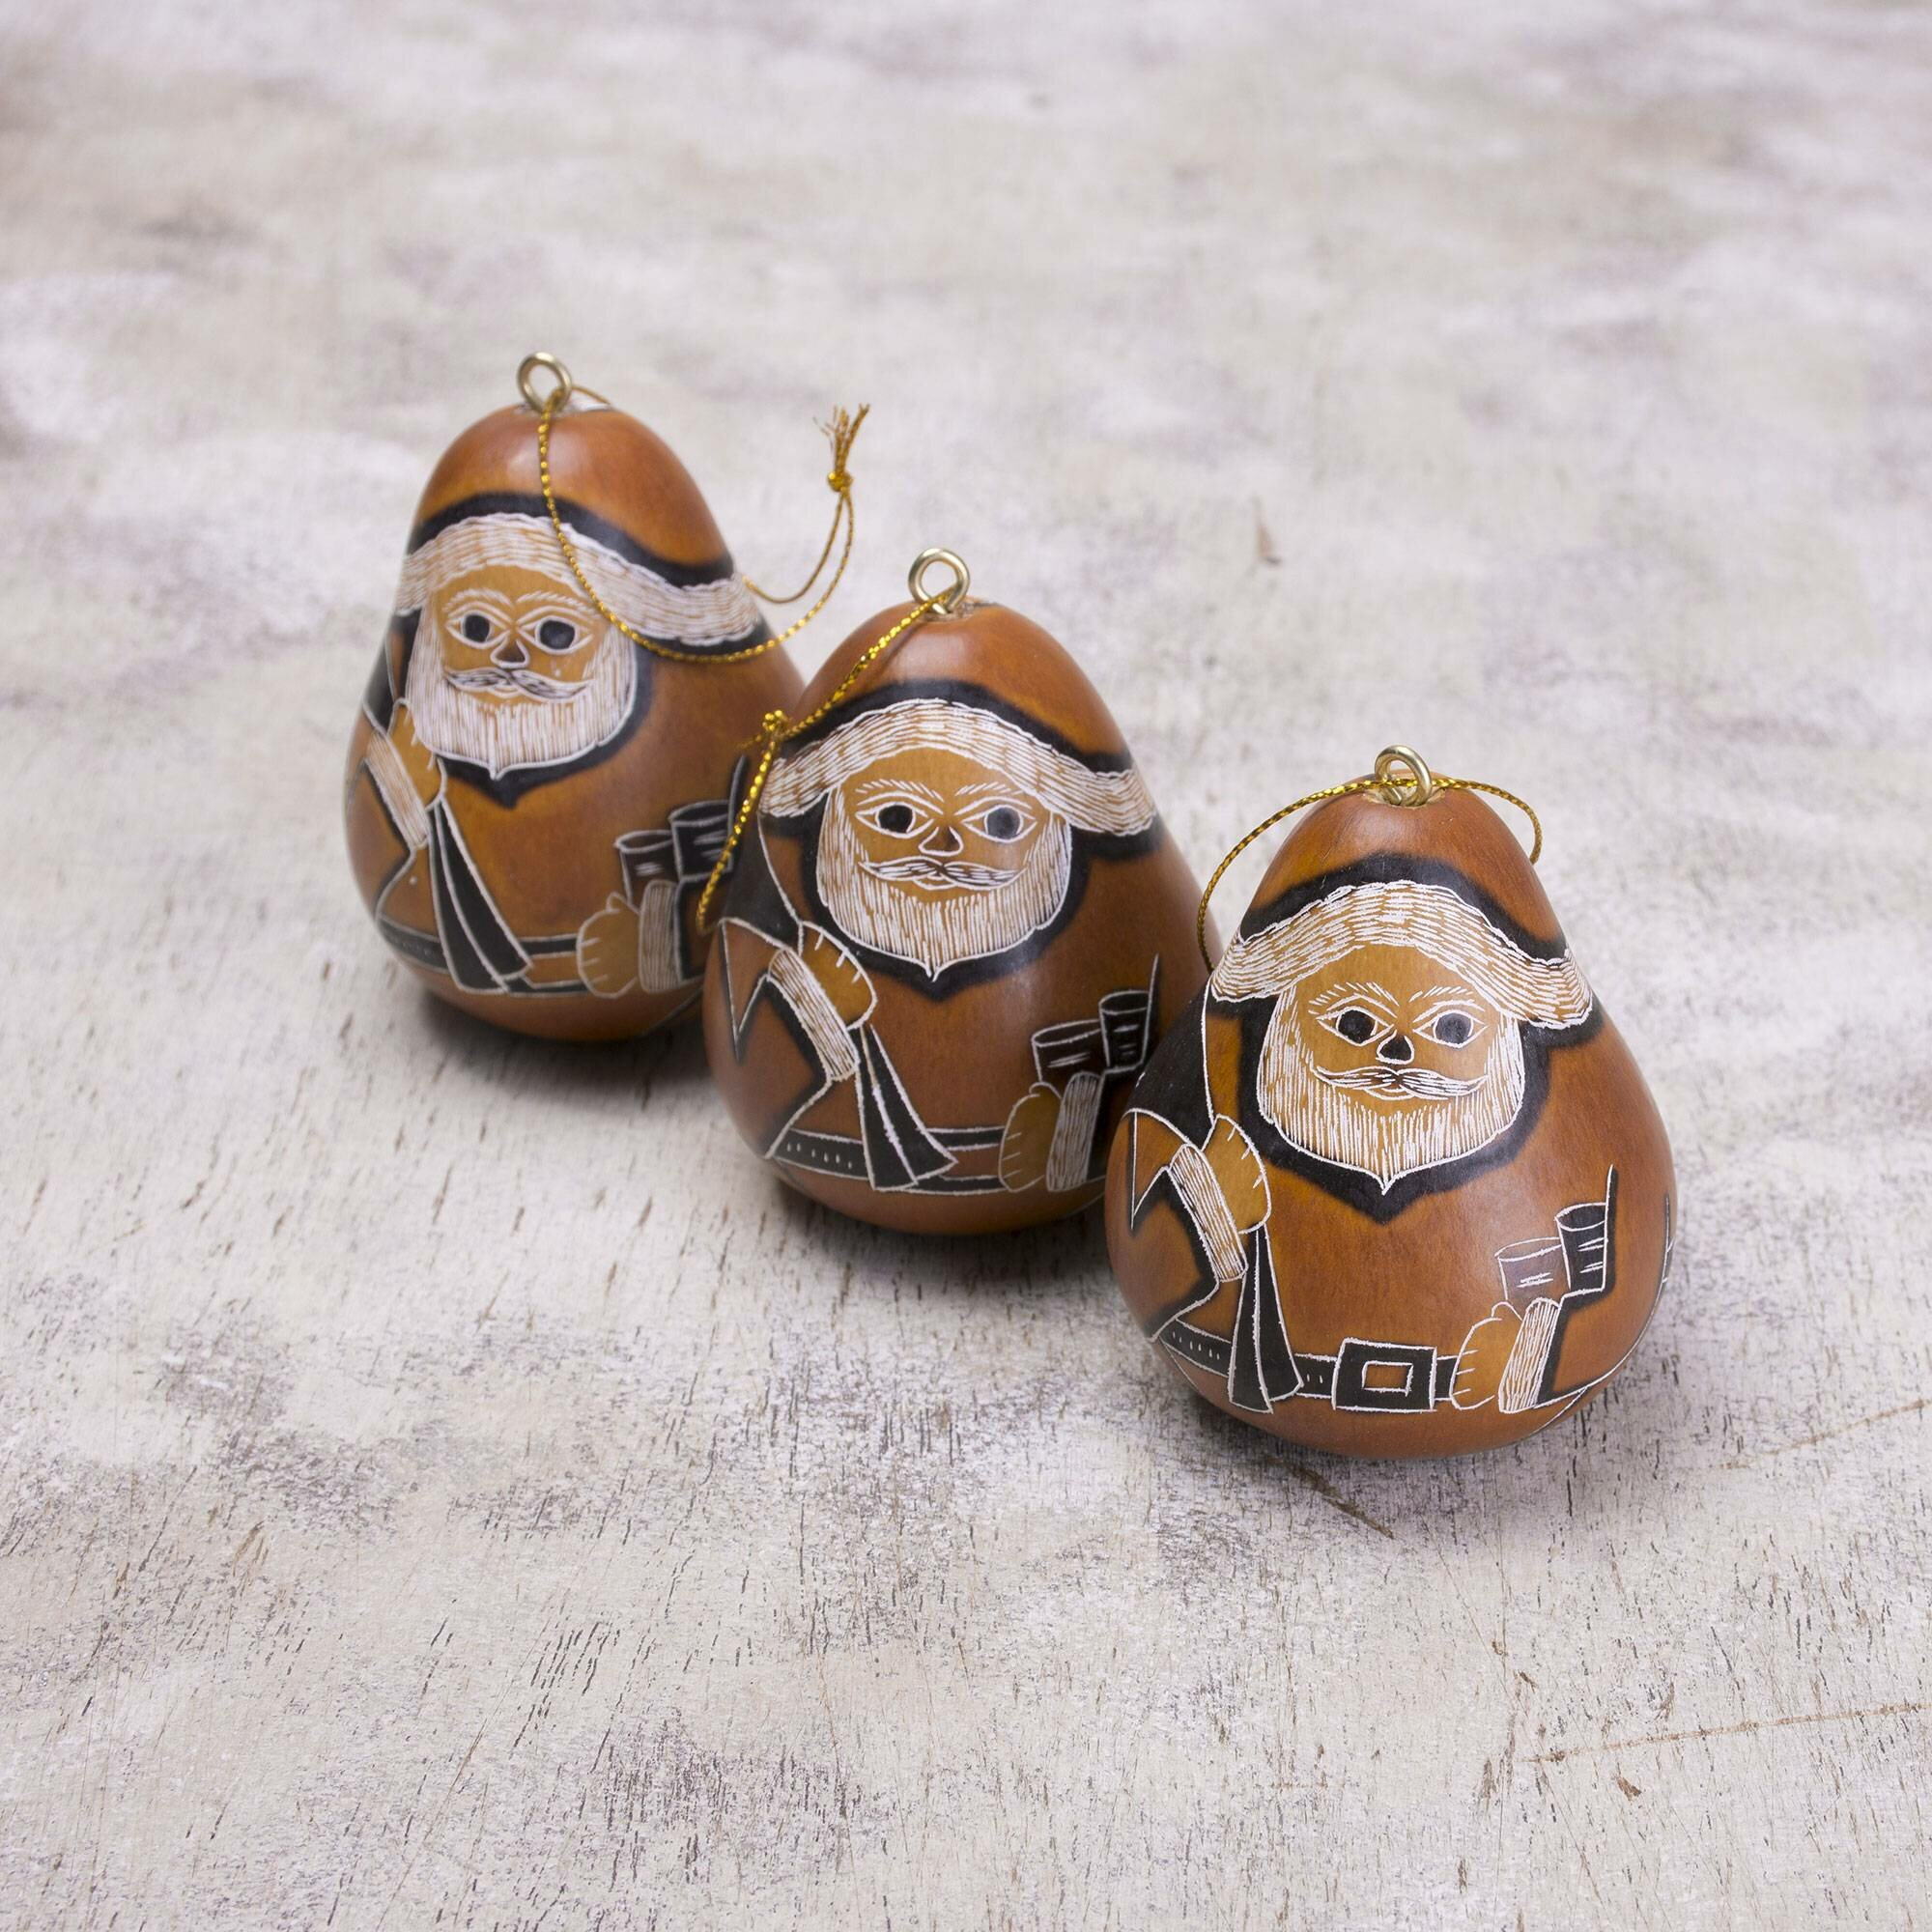 The Holiday Aisle Sweet Father Christmas Dried Mate Gourd Hanging Figurine Ornament Wayfair